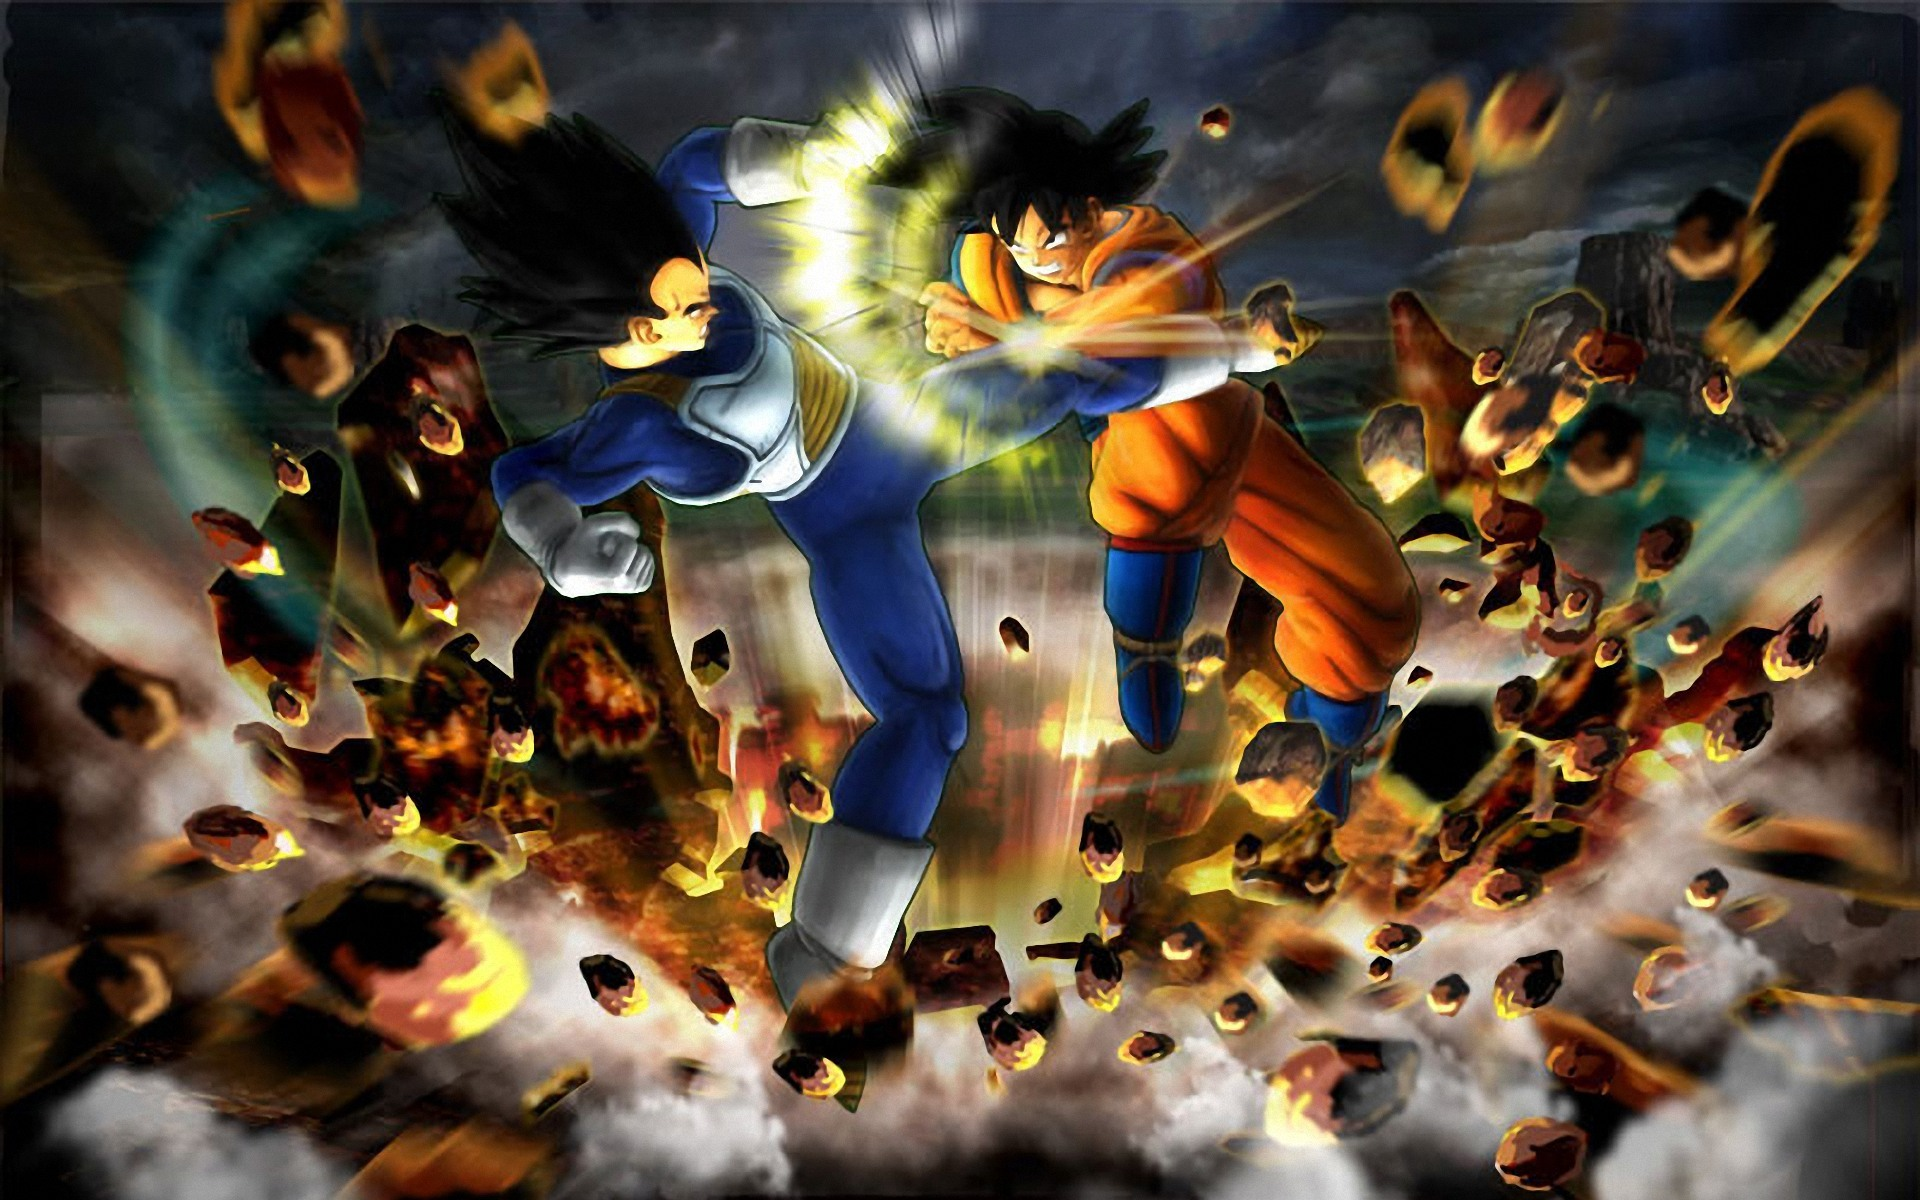 Are-you-looking-for-Dragon-Ball-Z-HD-Download-latest-collection-of-Dragon-Ball-Z-HD-Wall-wallpaper-wp3602692